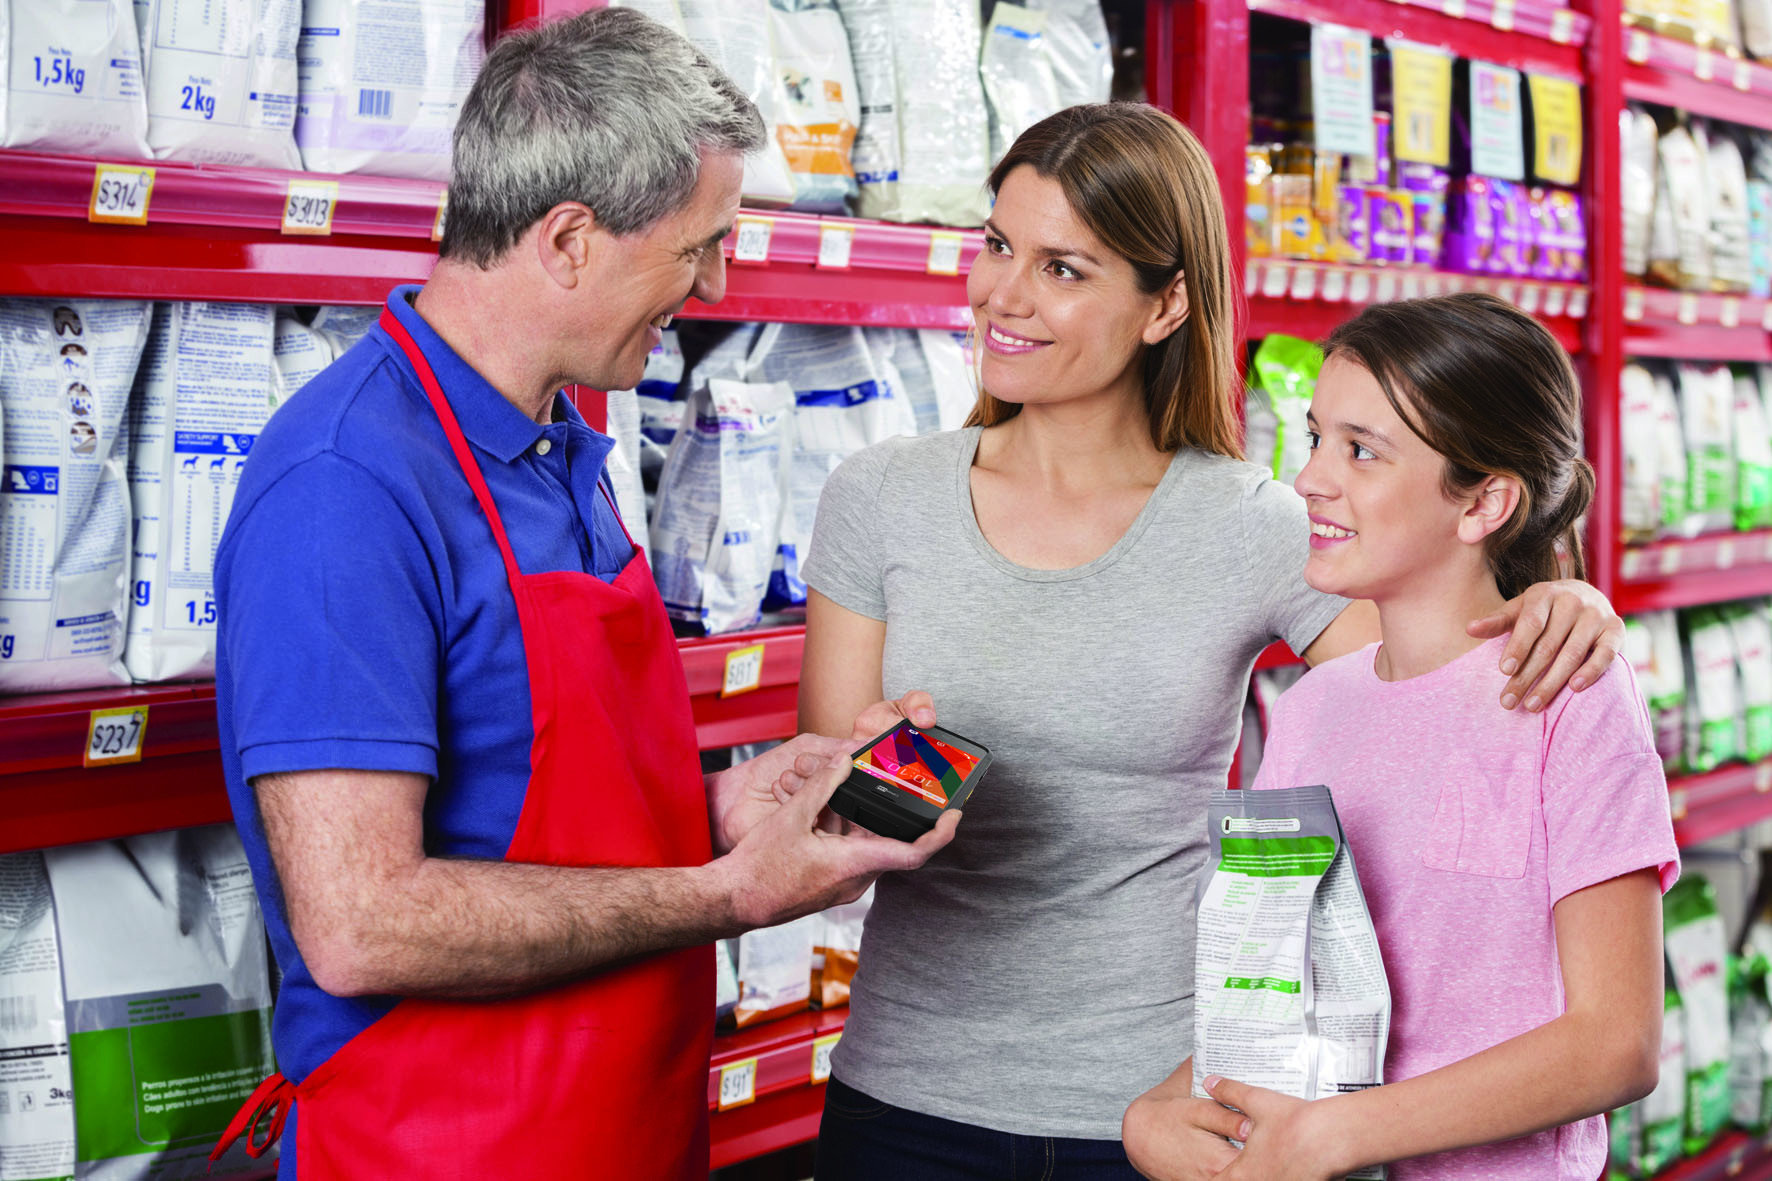 Retail Applications - Mobile POS|Australia CipherLab world leader in AIDC solutions